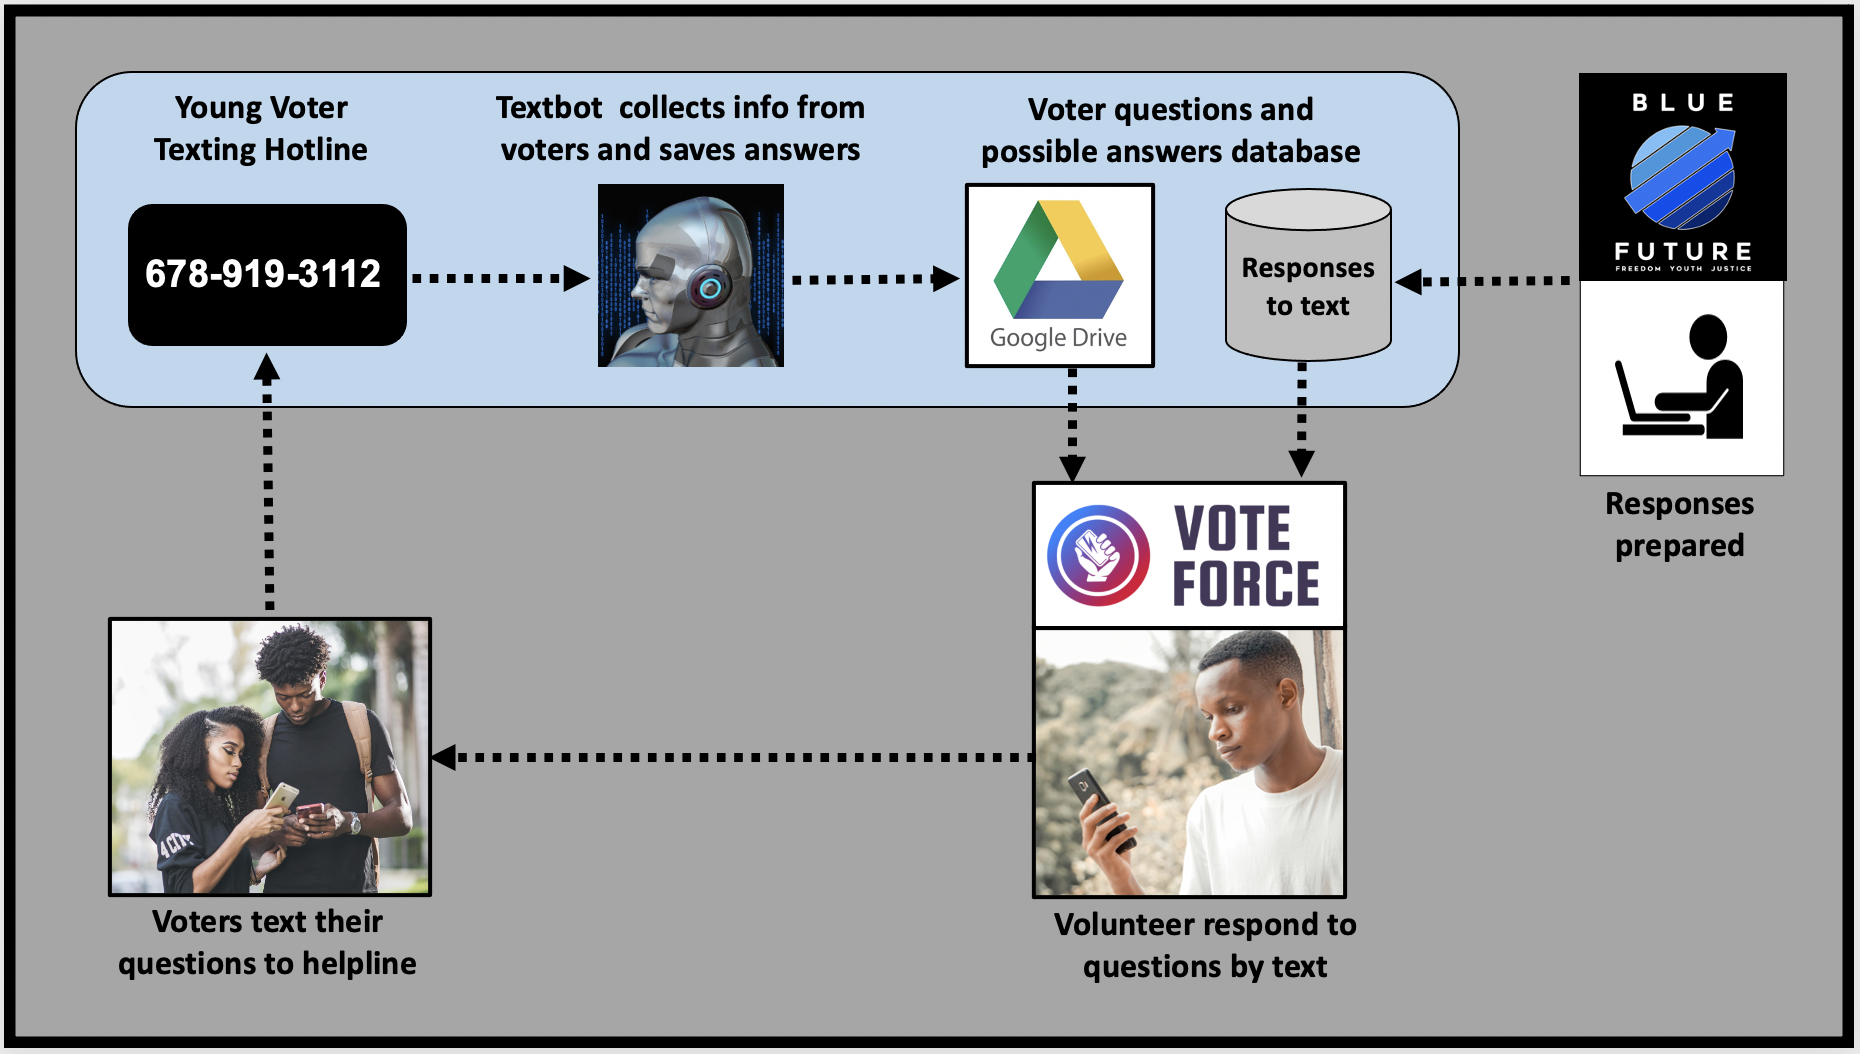 Blue Force uses textbots to mobilize young voters in Georgia